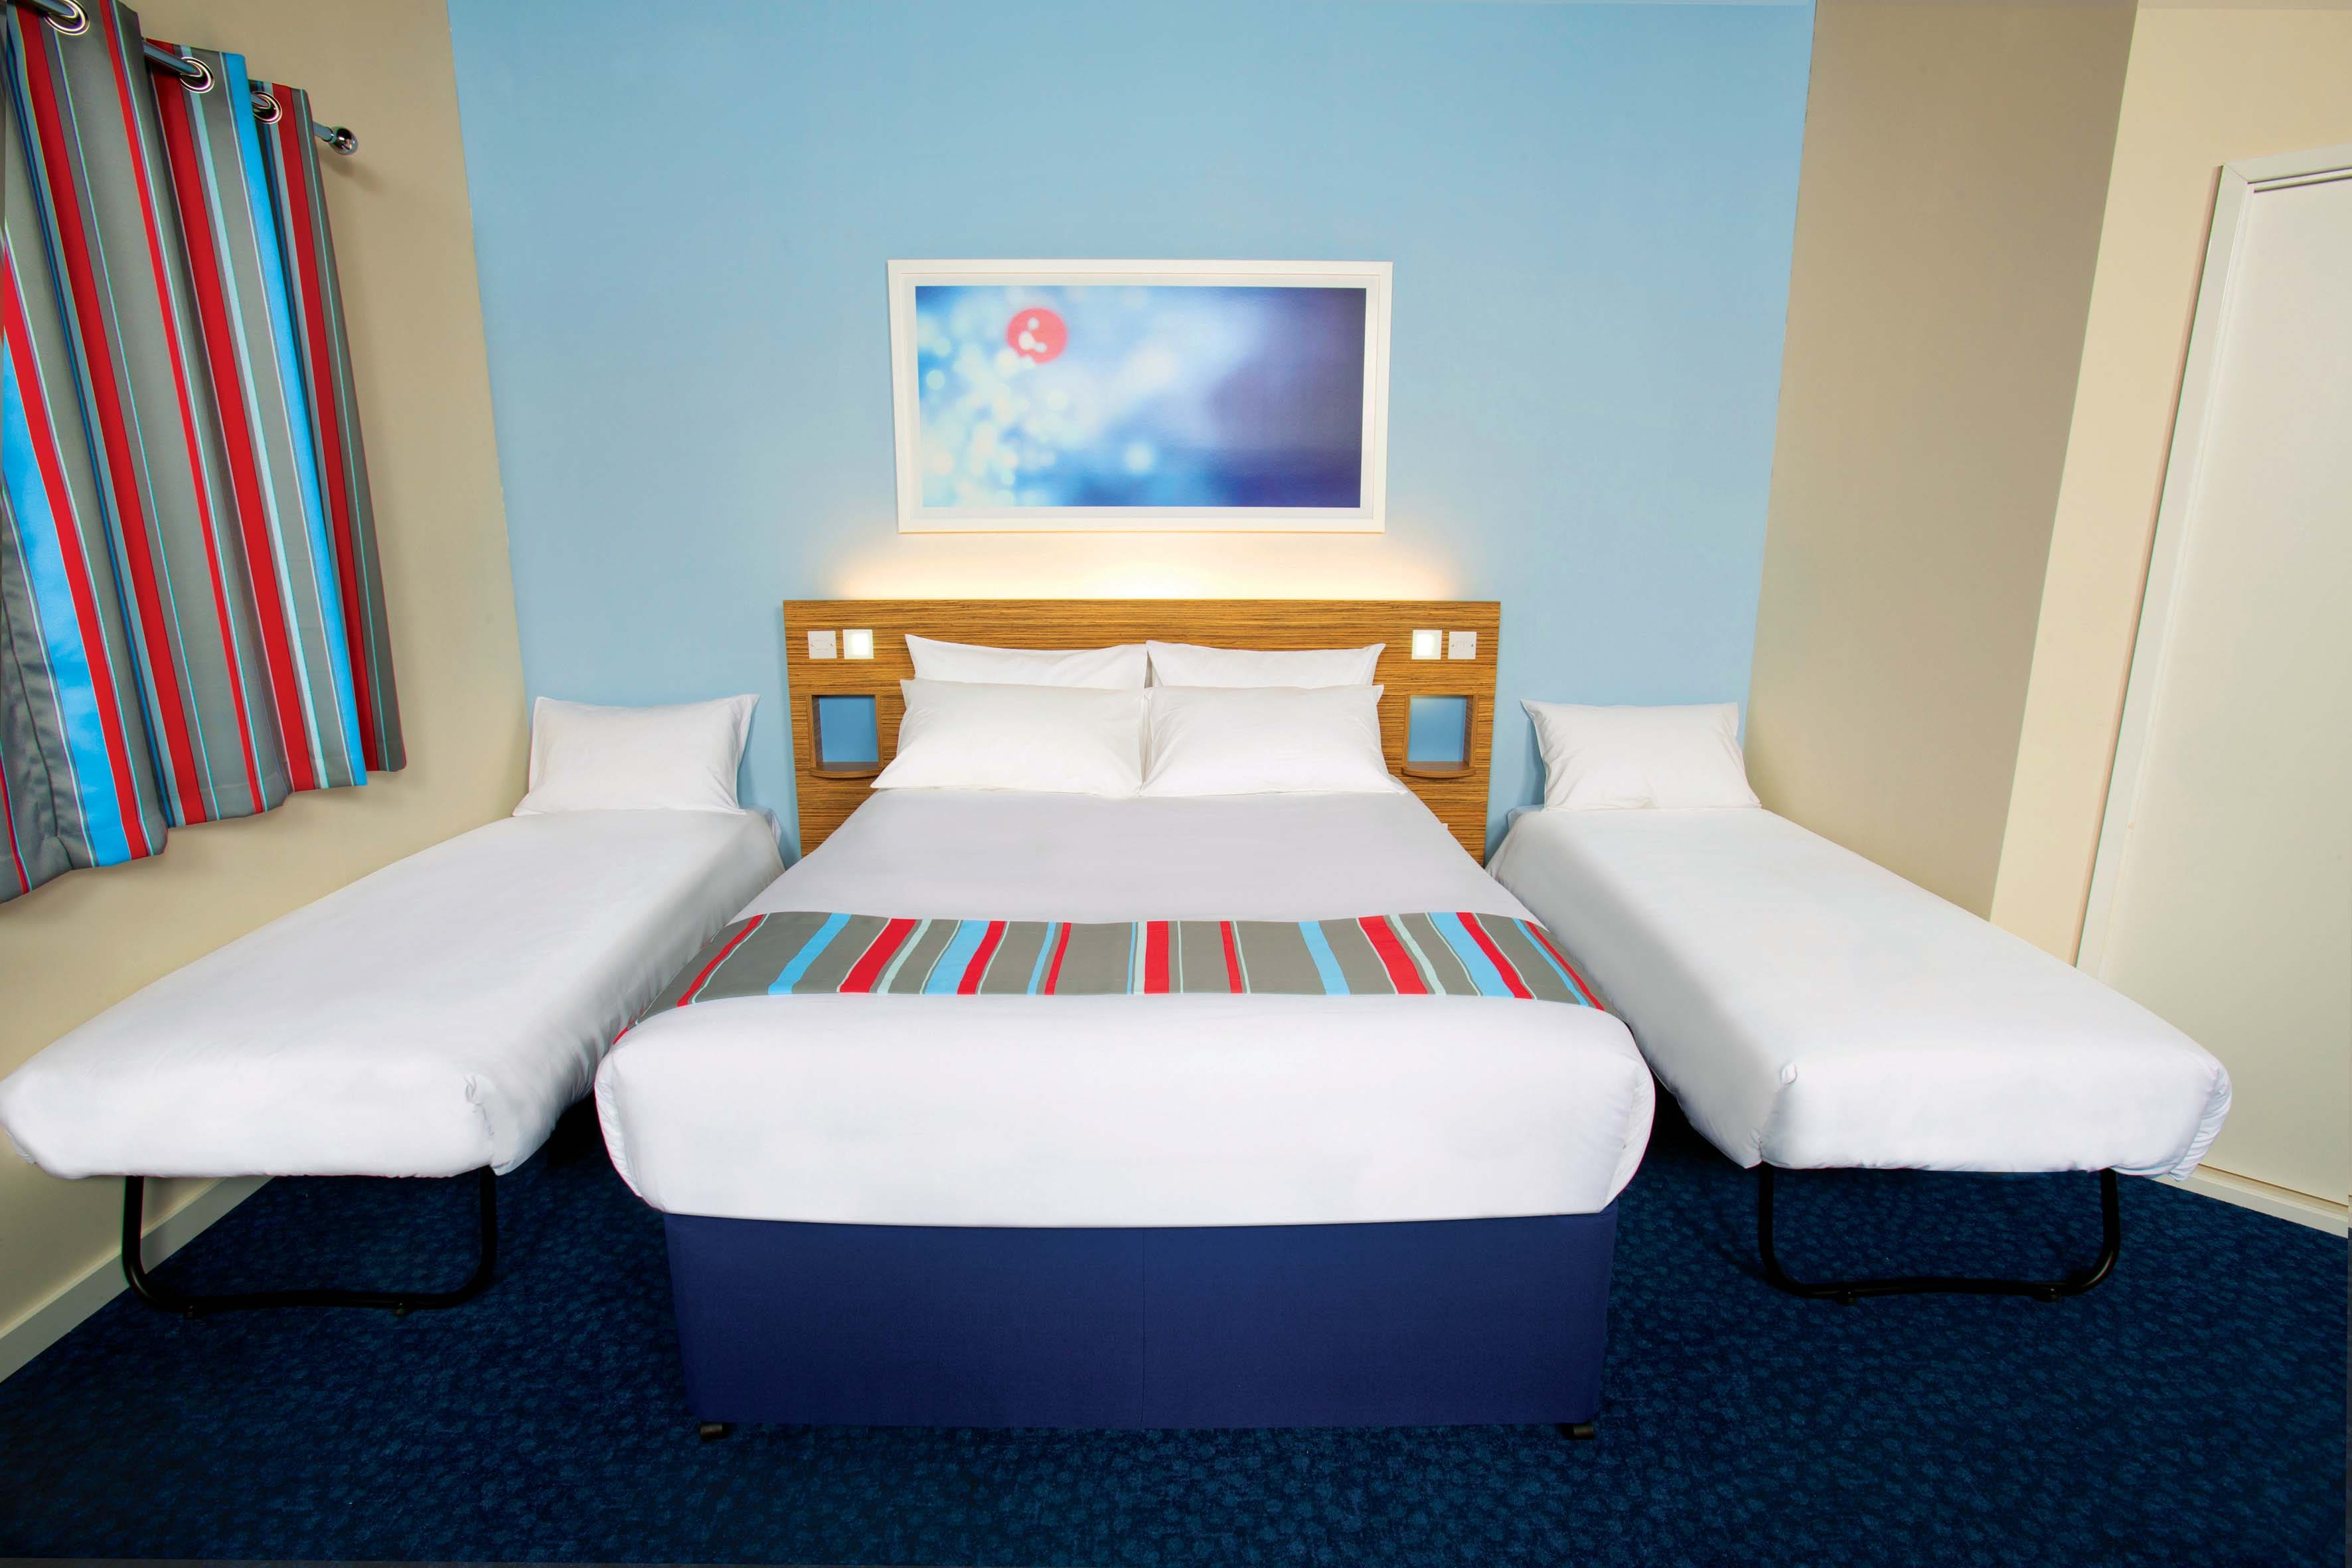 Manchester Travelodge Travelodge | Image Bank